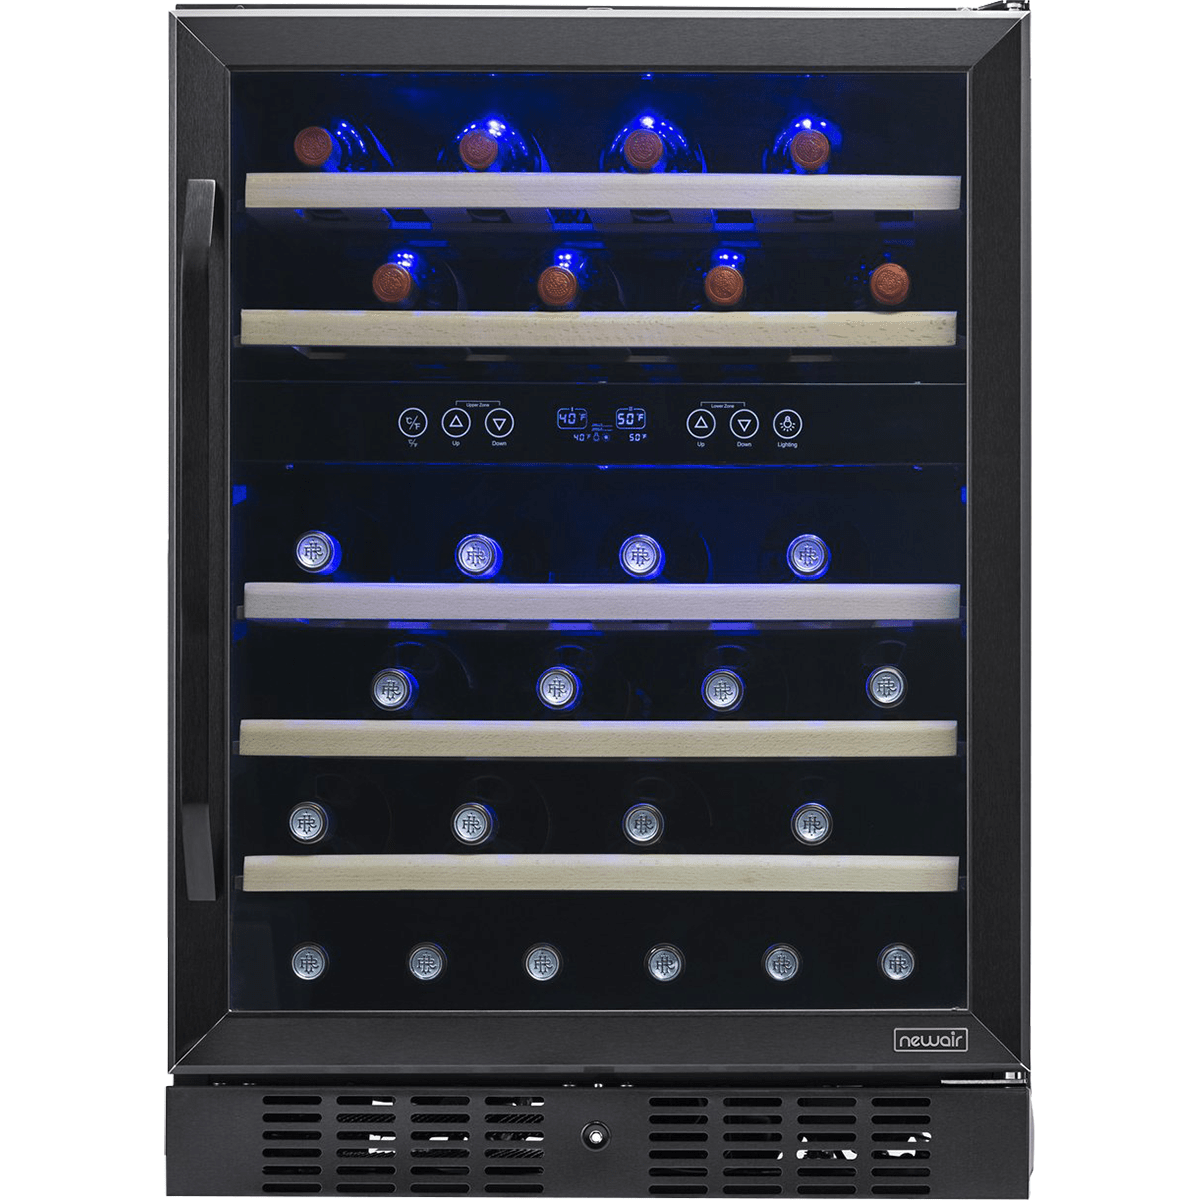 Image of NewAir 46 Bottle Dual Zone Compressor Wine Cooler - Black Stainless Steel